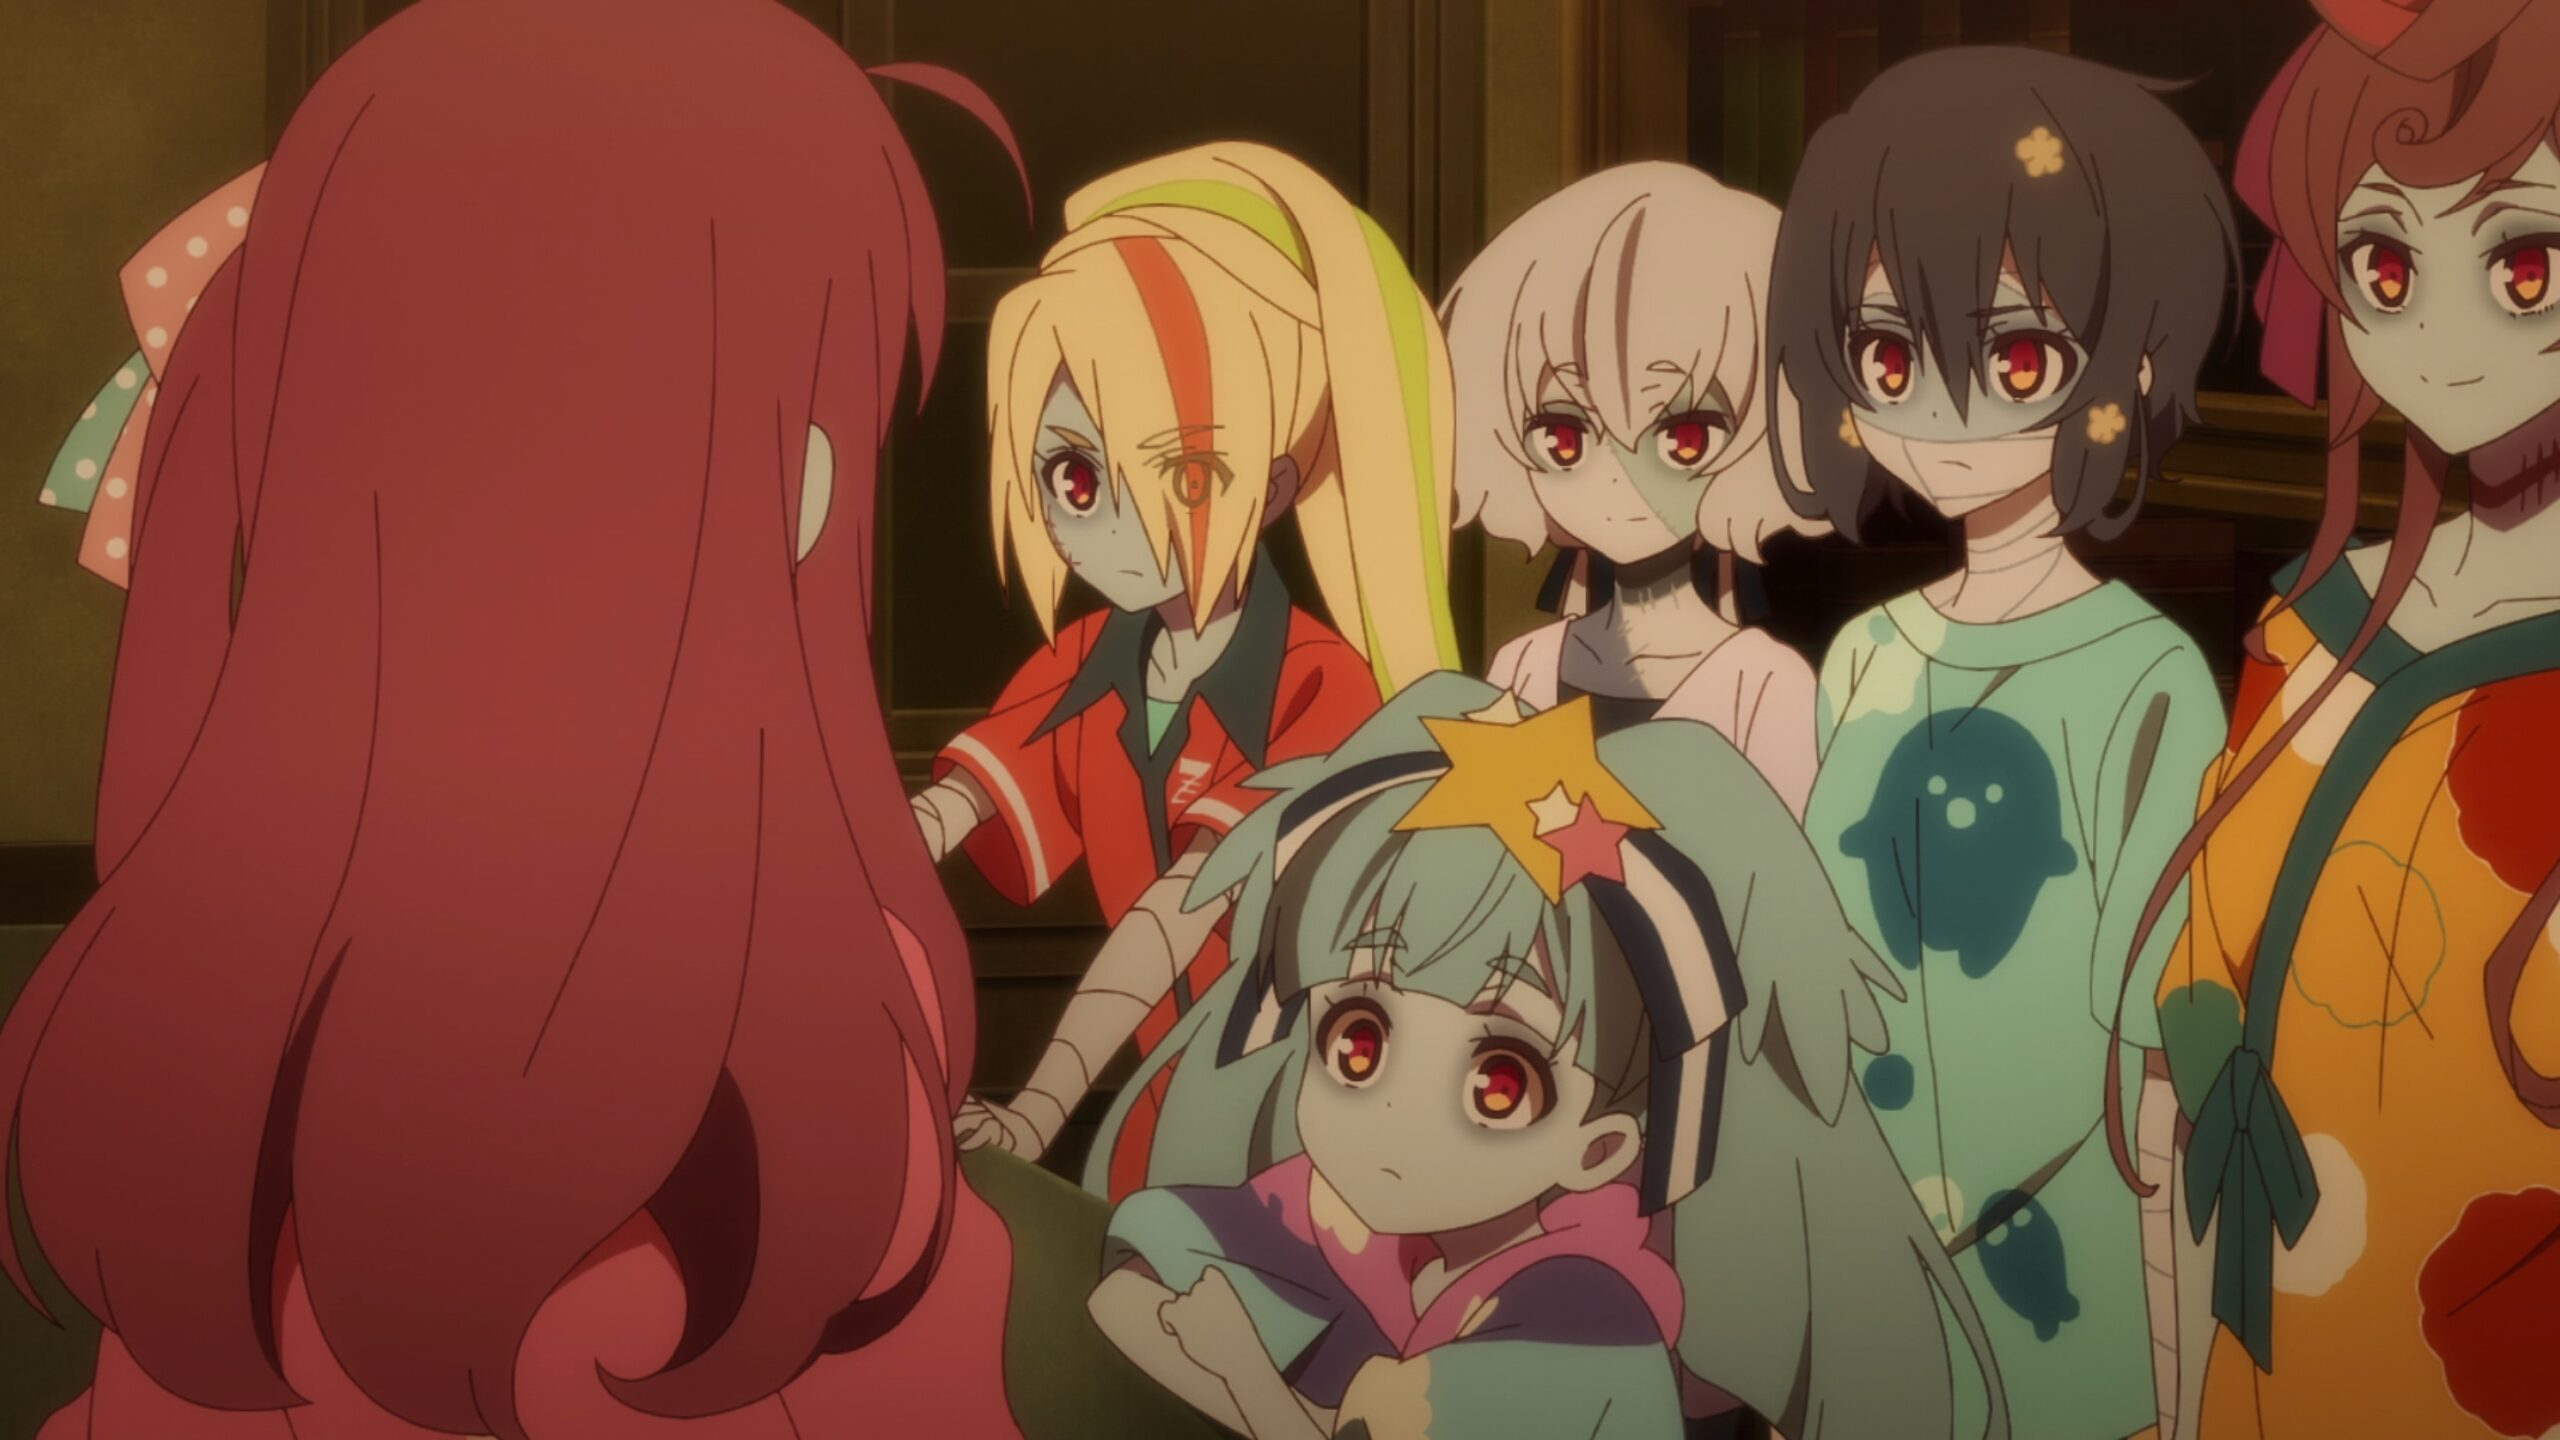 Zombieland Saga Season 2 Episode 13 Release Date, Time And Watch Online